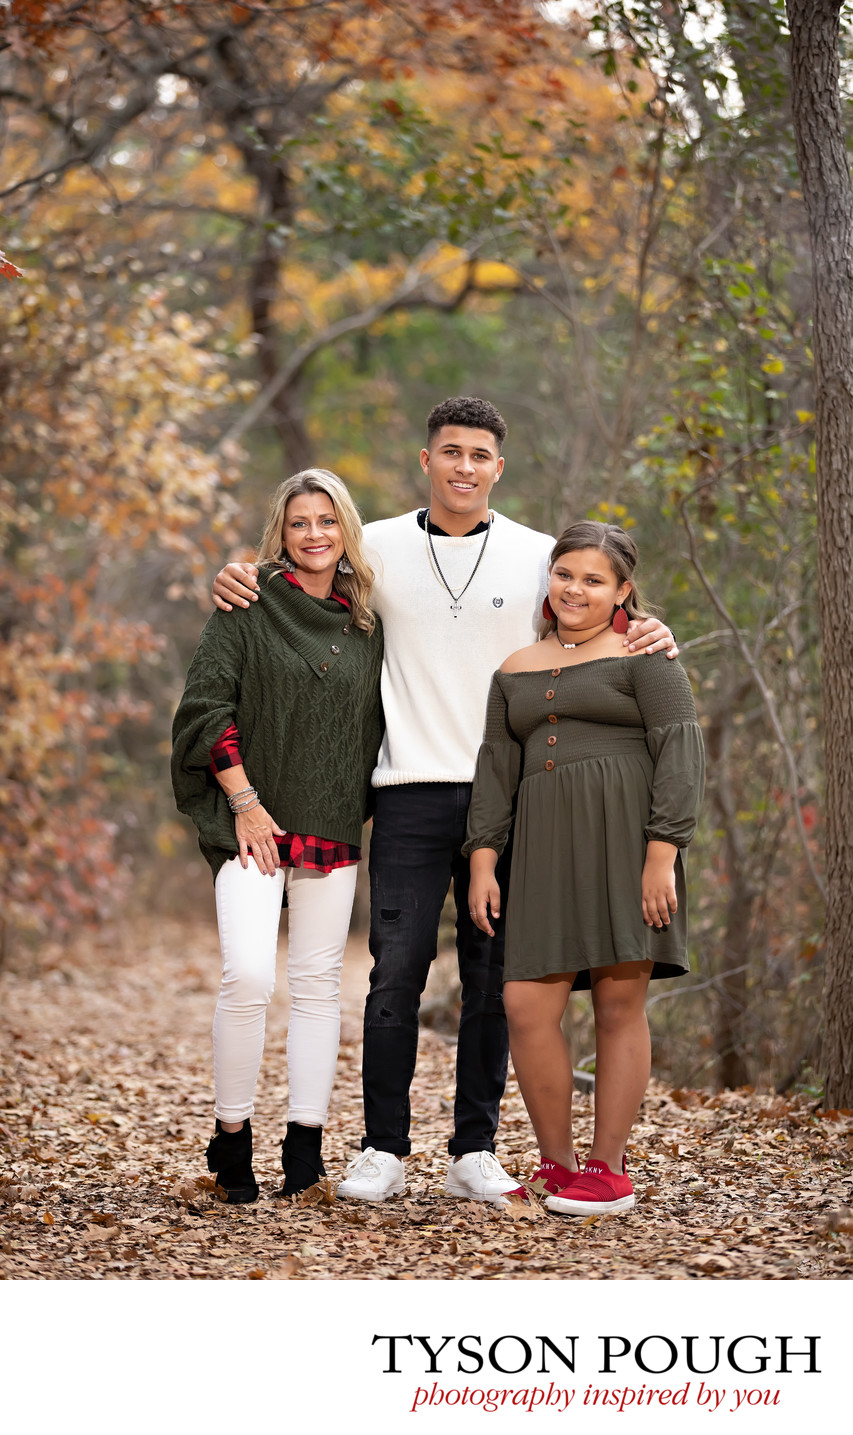 Family Holiday Portraits in the Park